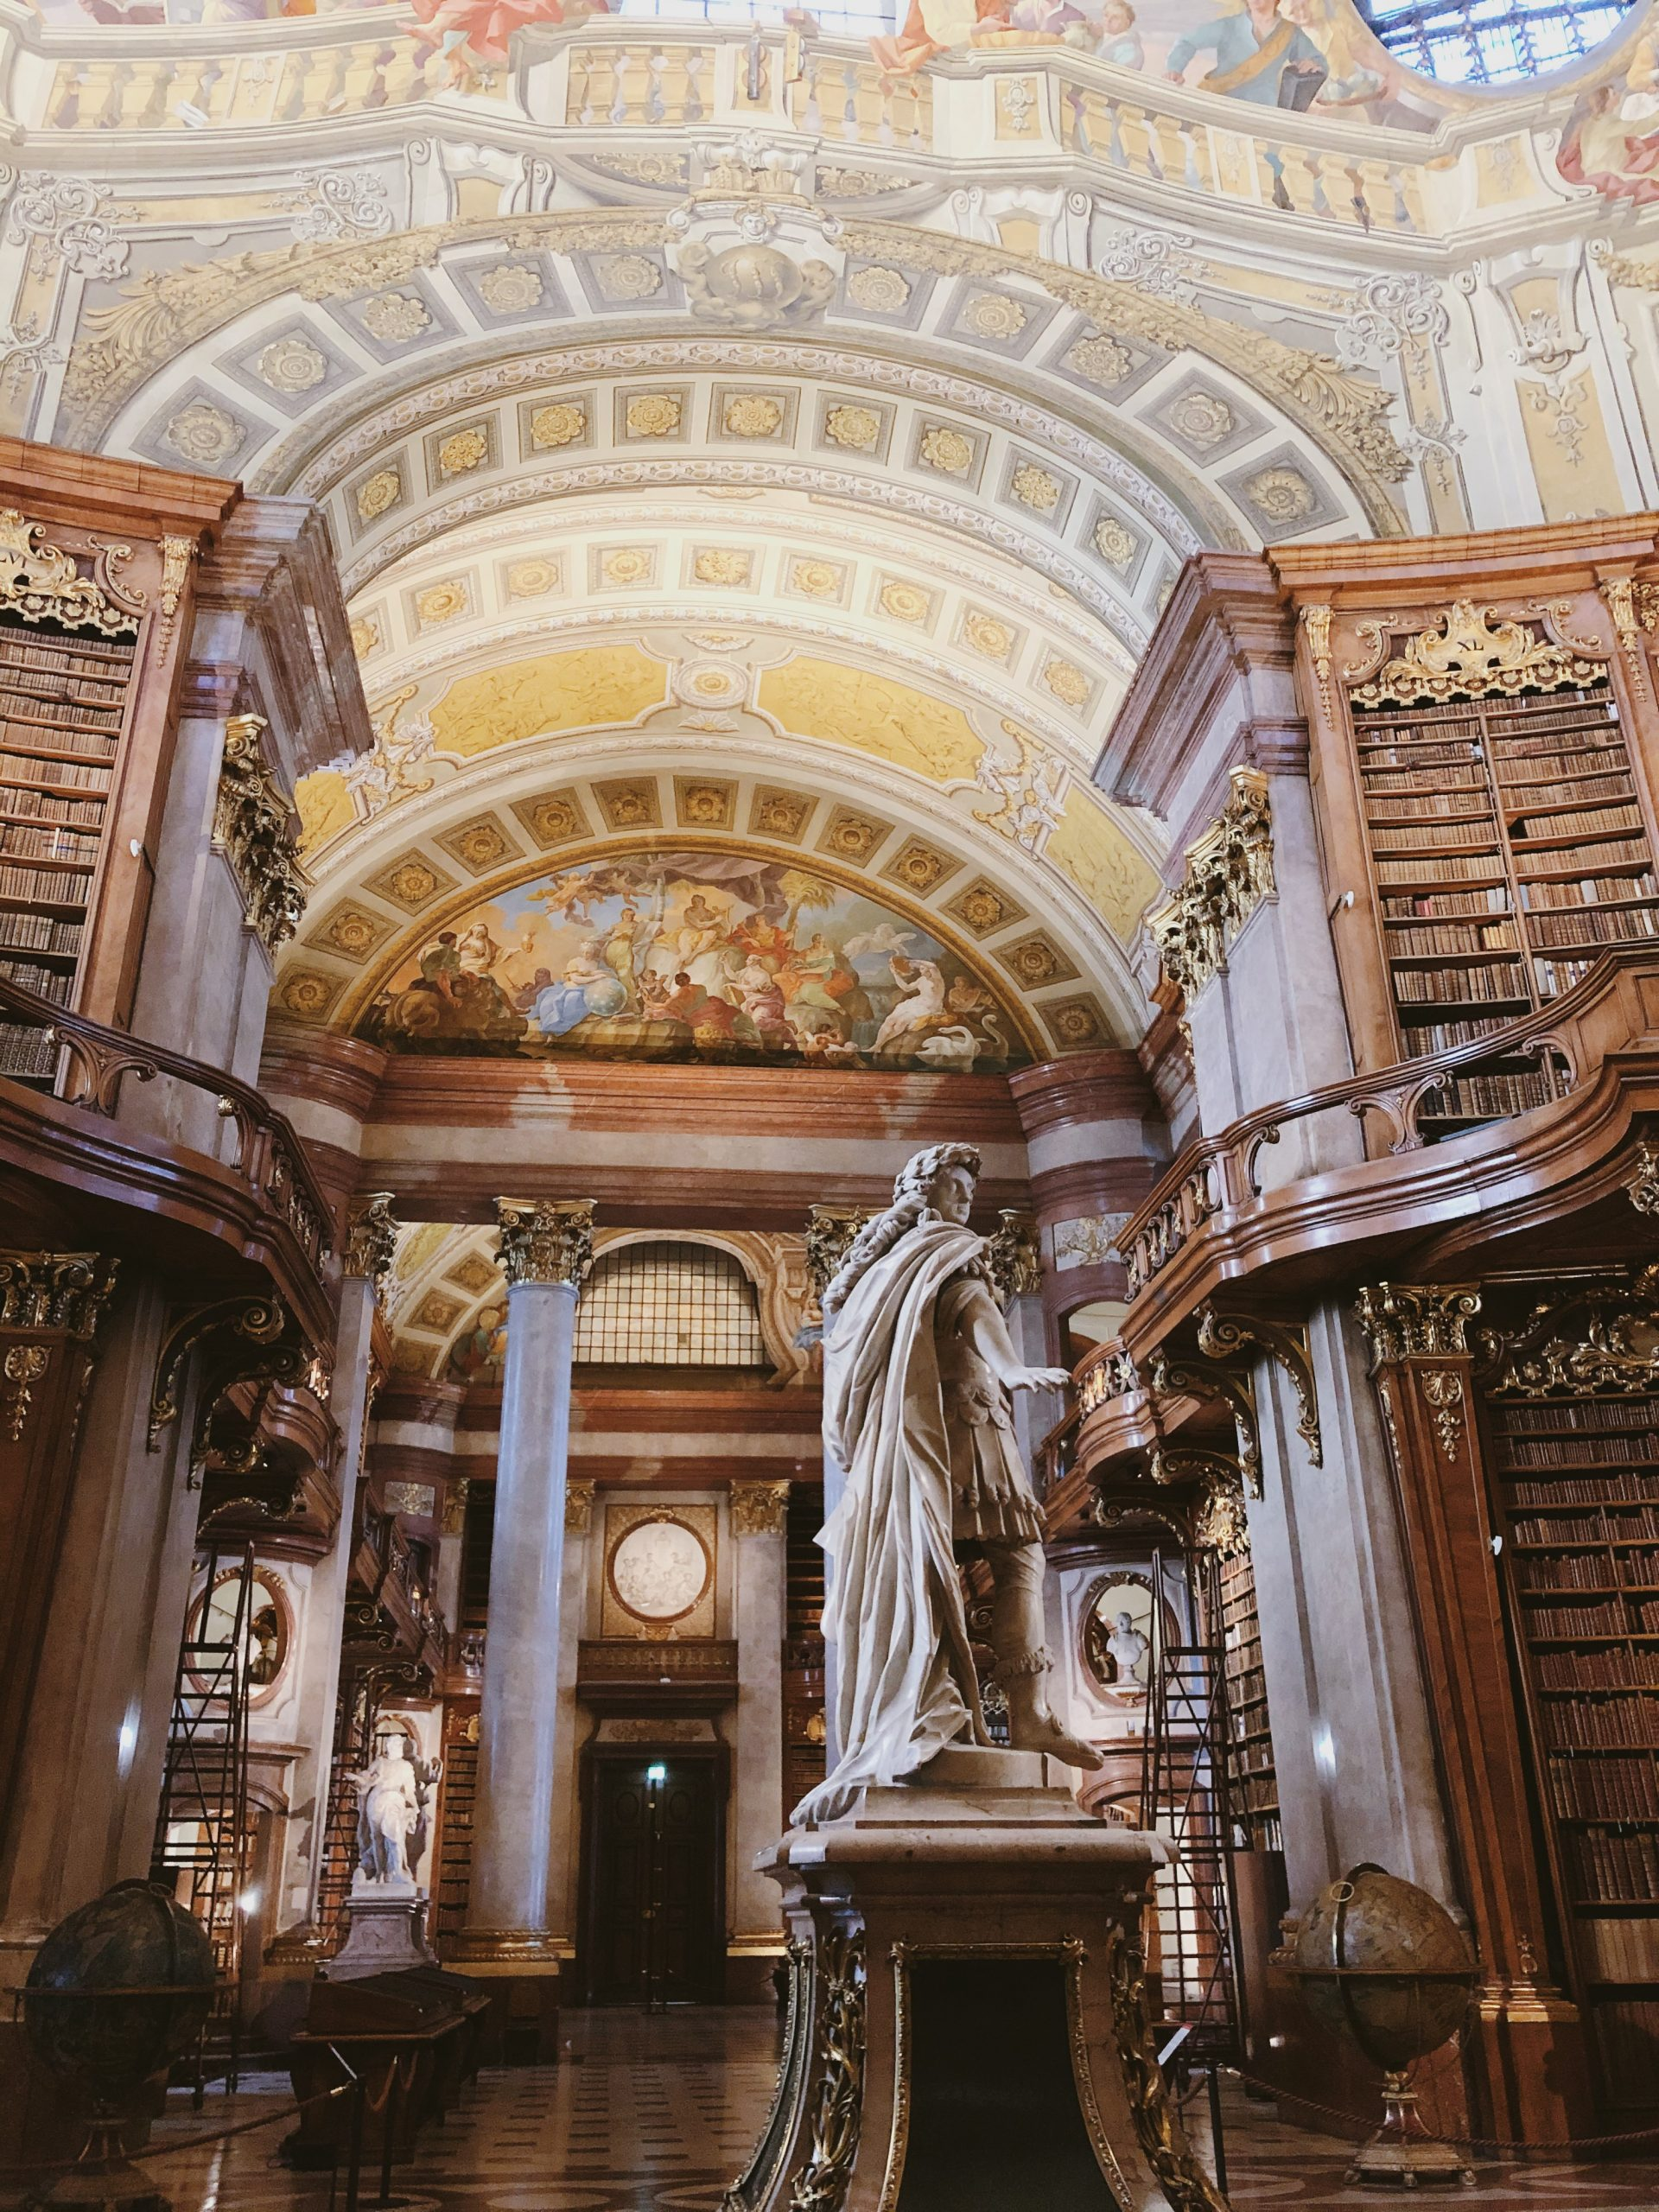 interior of historic library with domed ceilings and ornate pillars and sculptures